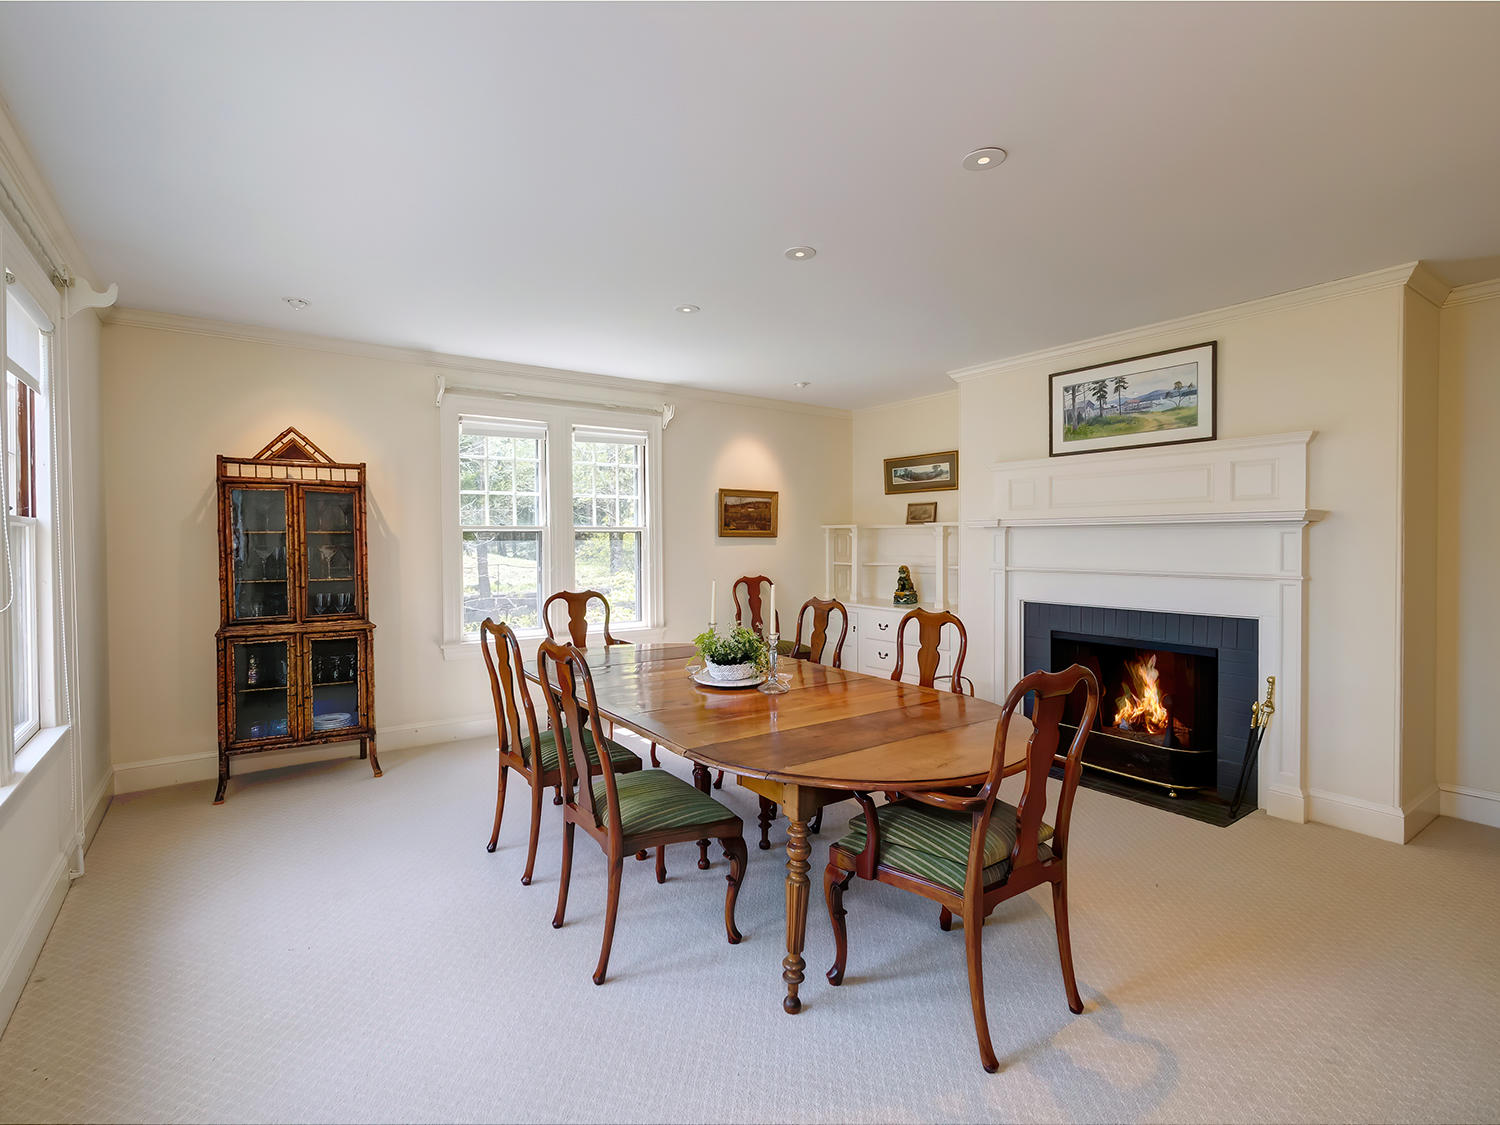 16-11-56- Dining Room to FP(56)